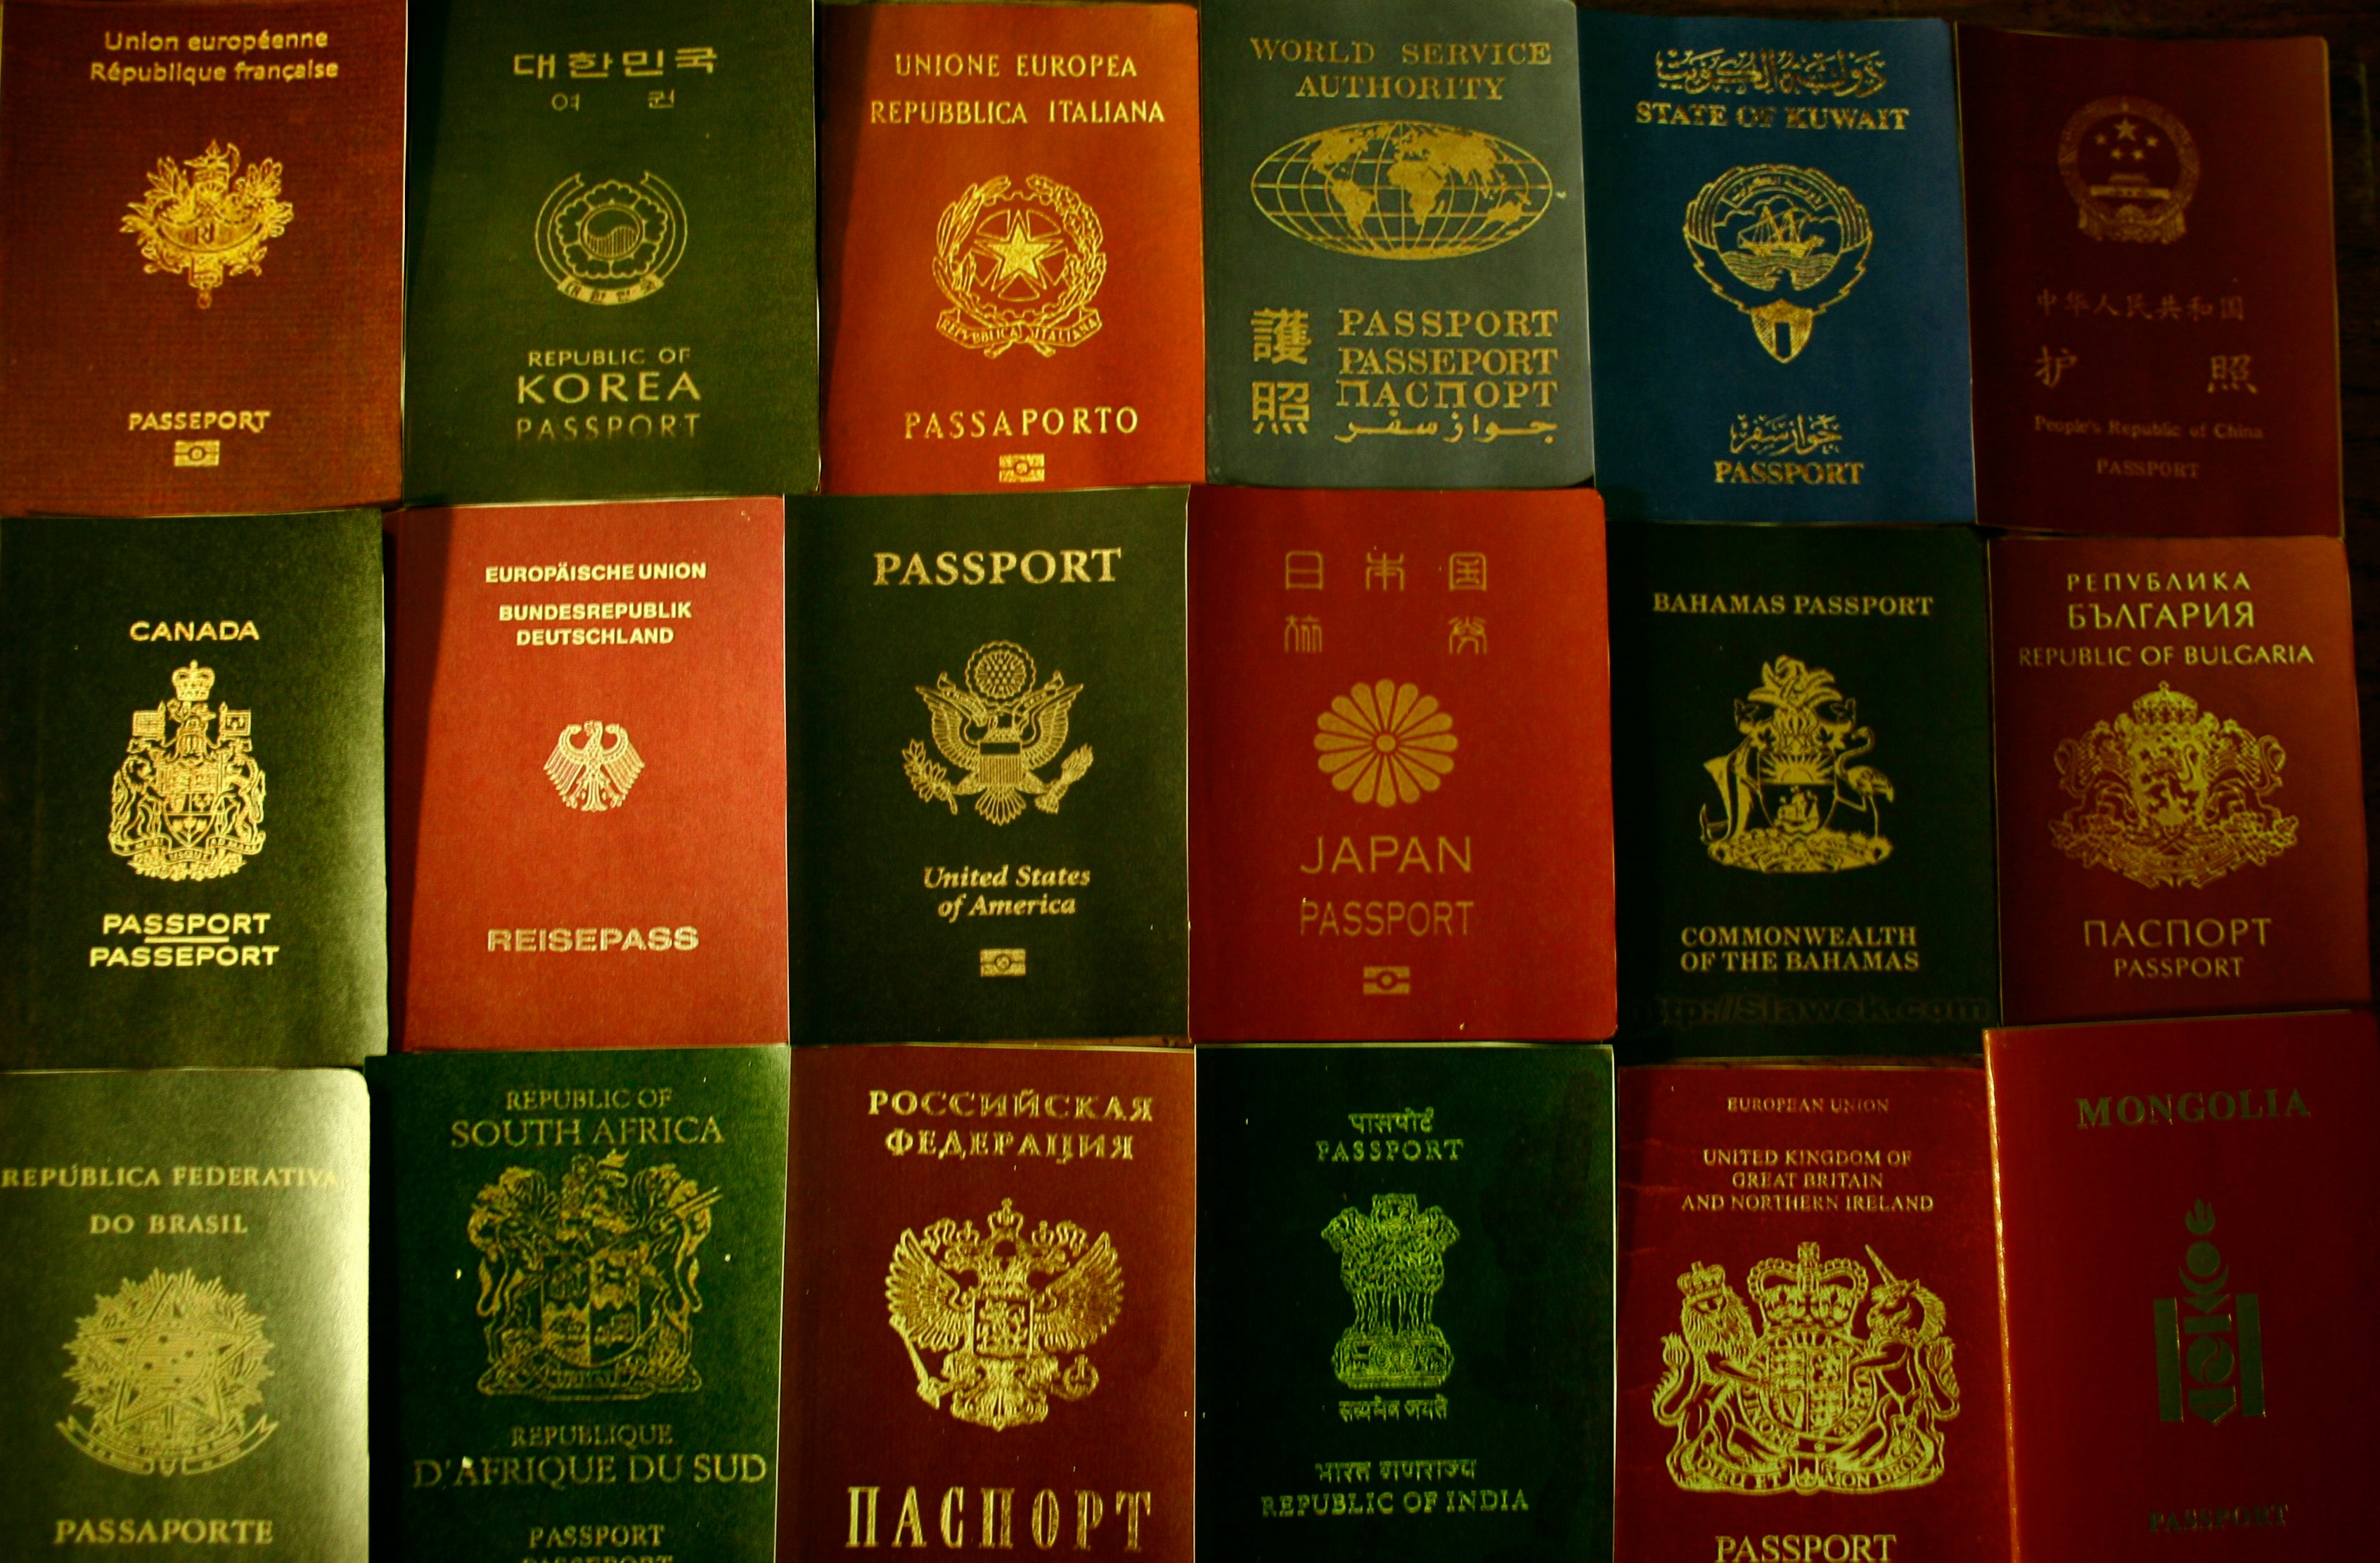 A collection passports from different countries across the world.